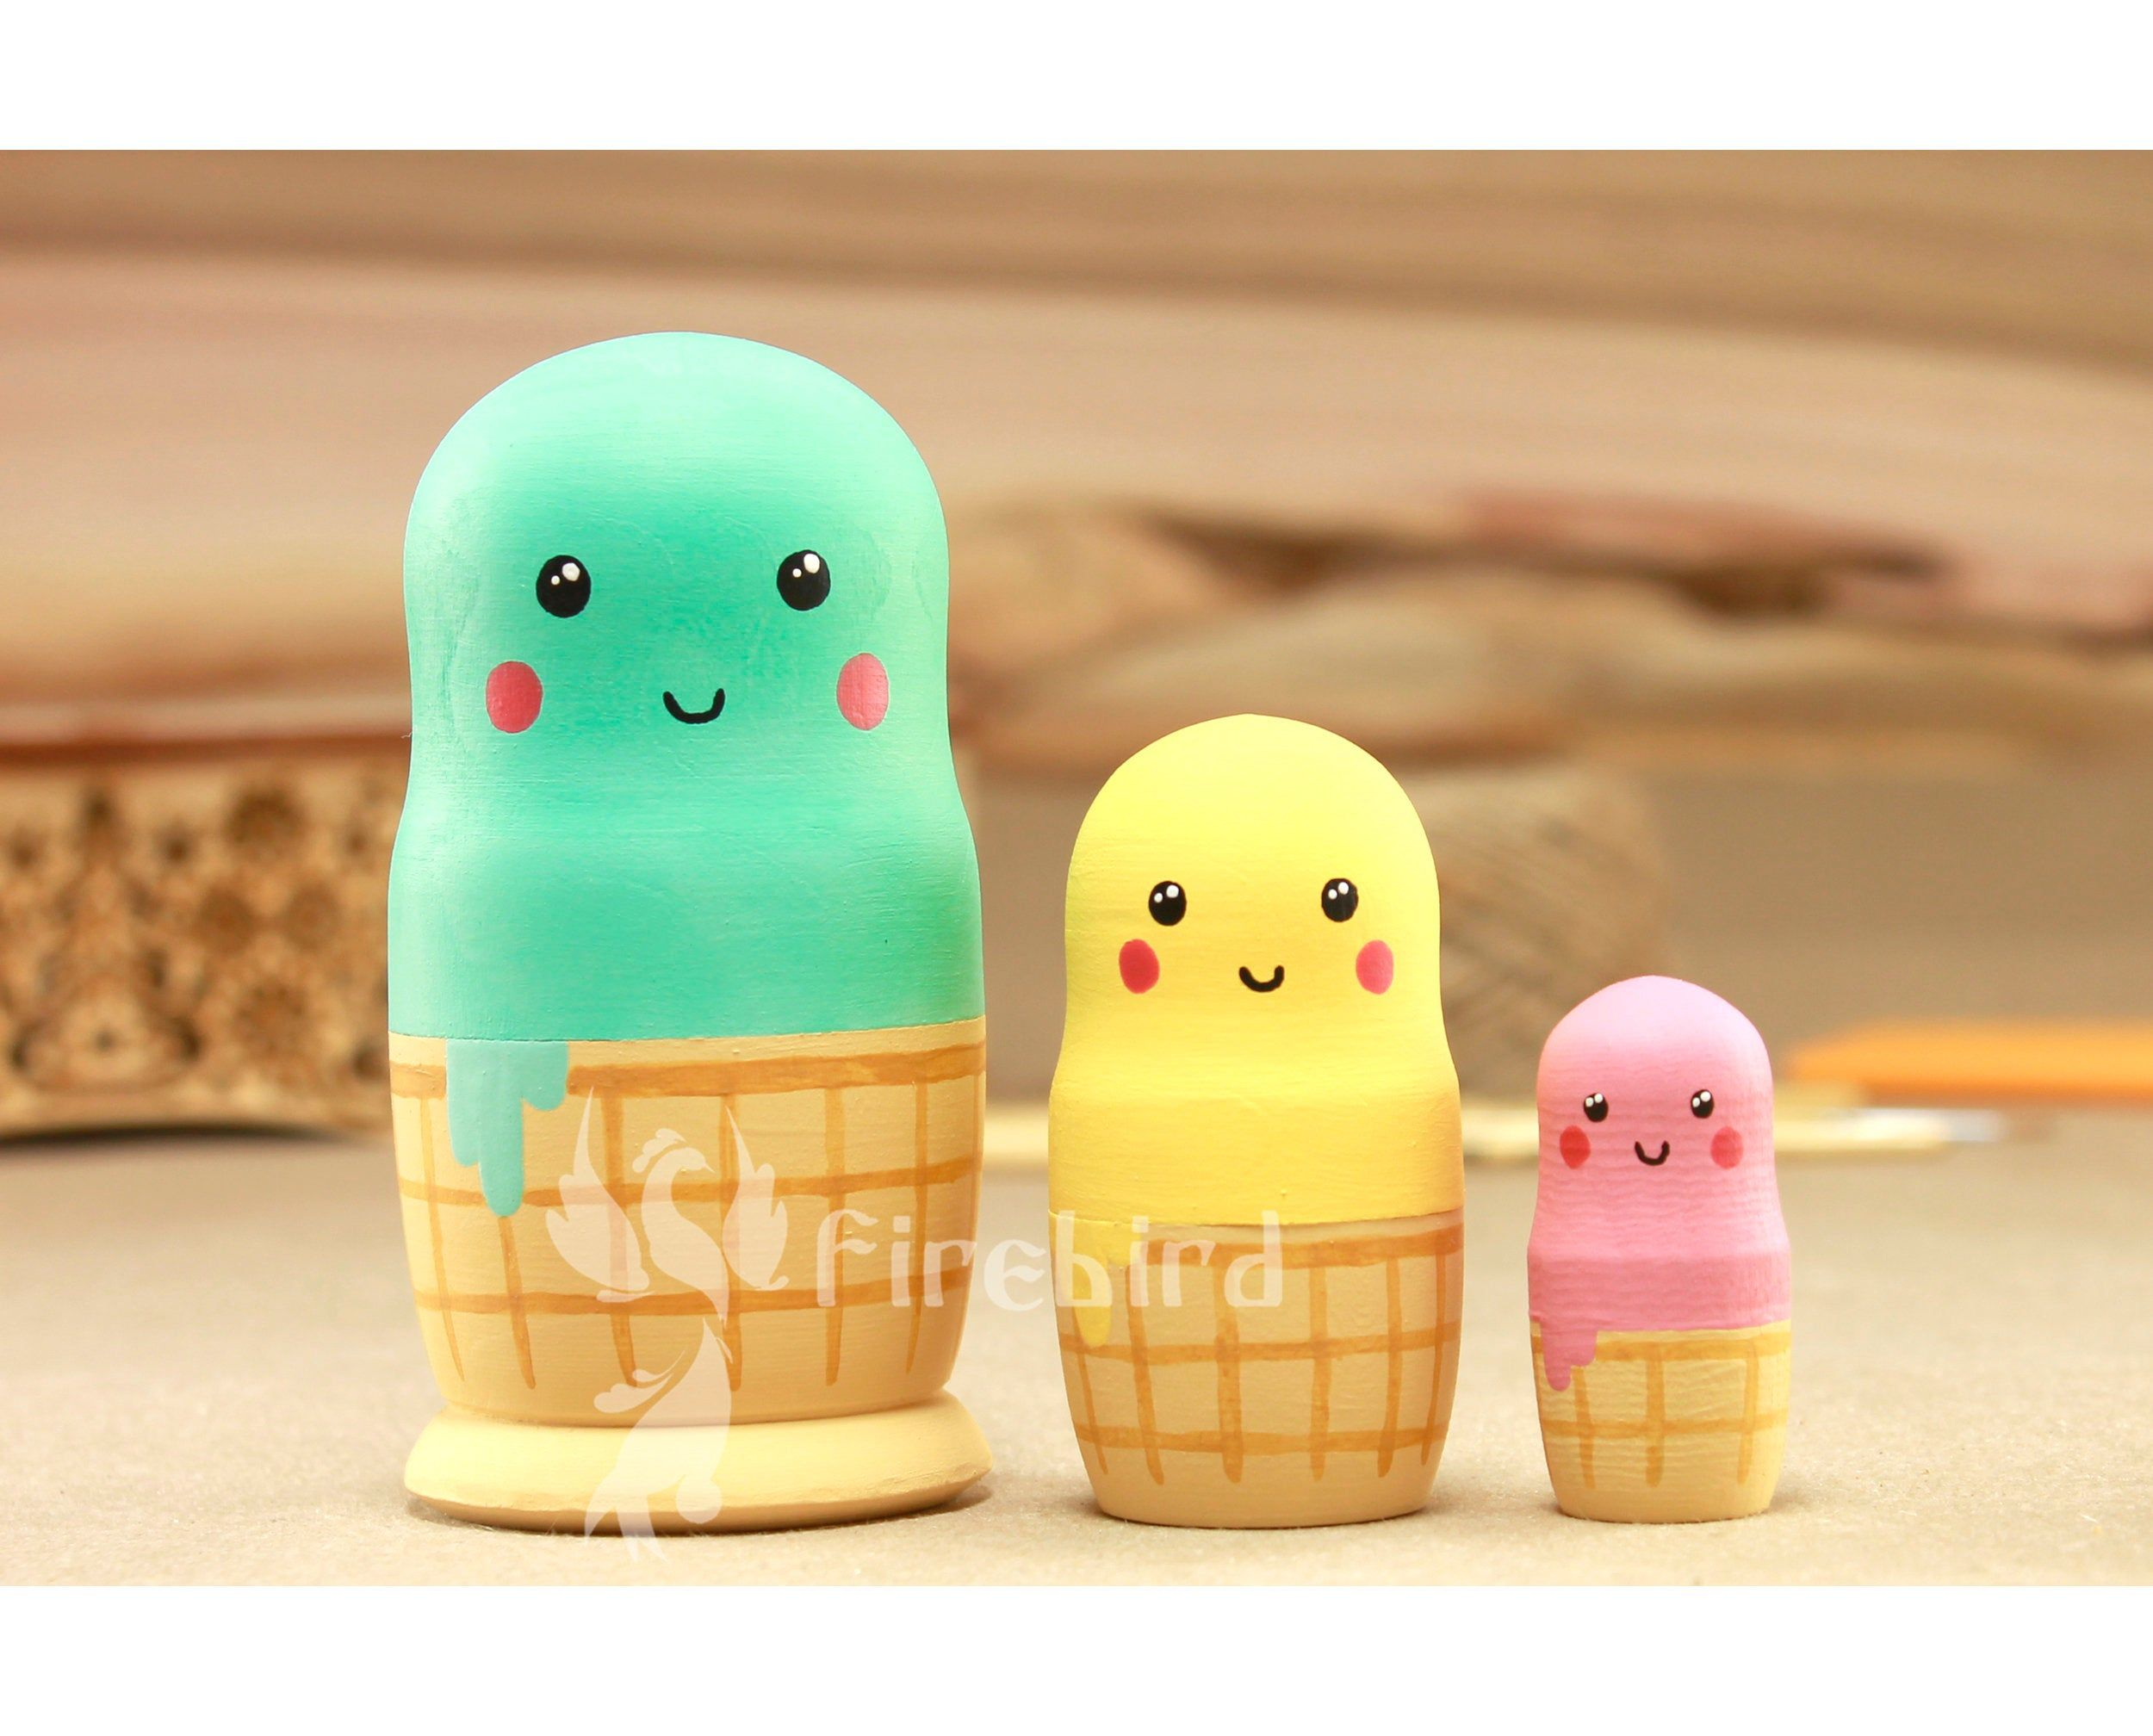 10 PCS Painted Wooden Russian Nesting Dolls Yellow Duck Matryoshka Kids Toys